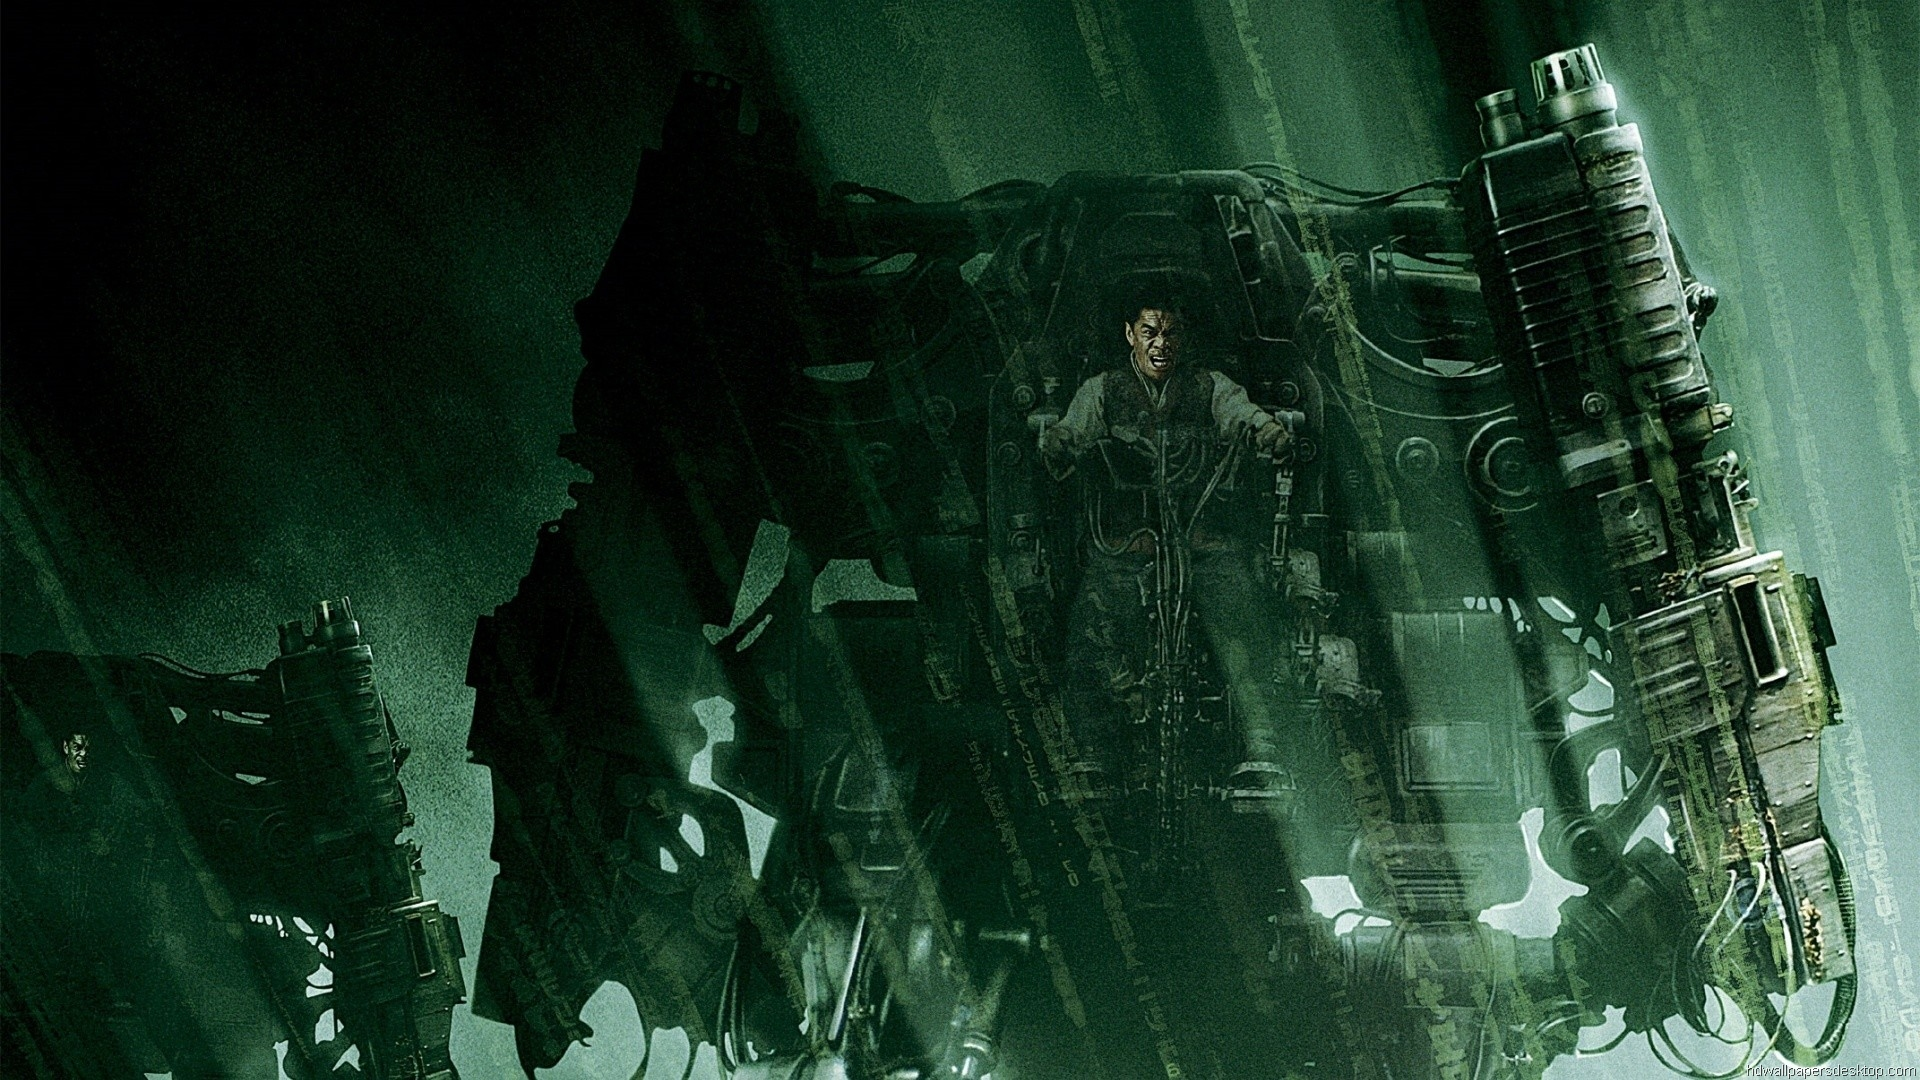 the matrix live wallpaper desktop - wallpapersafari